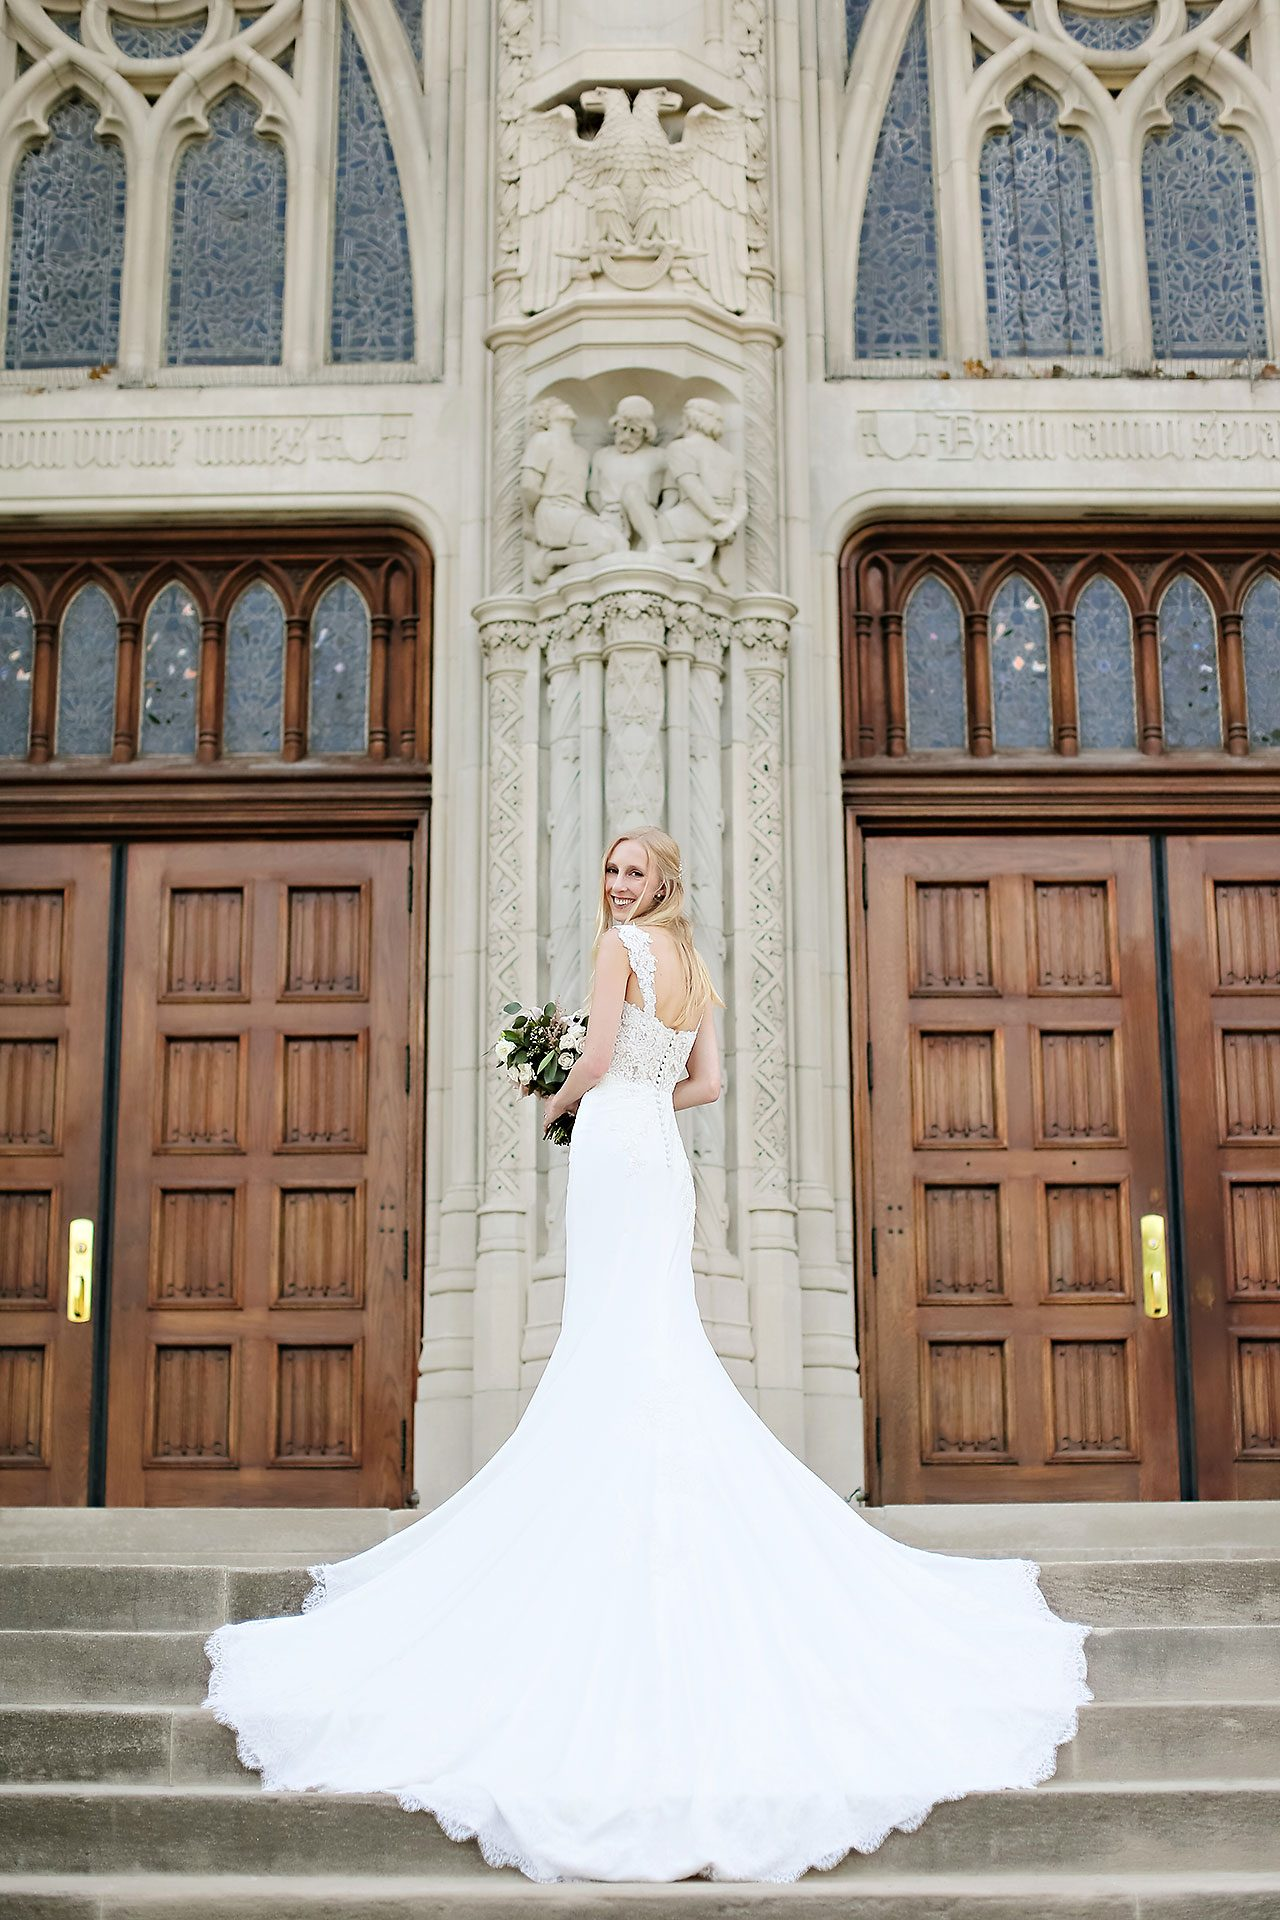 Molly Declan Scottish Rite Indianapolis Wedding 217